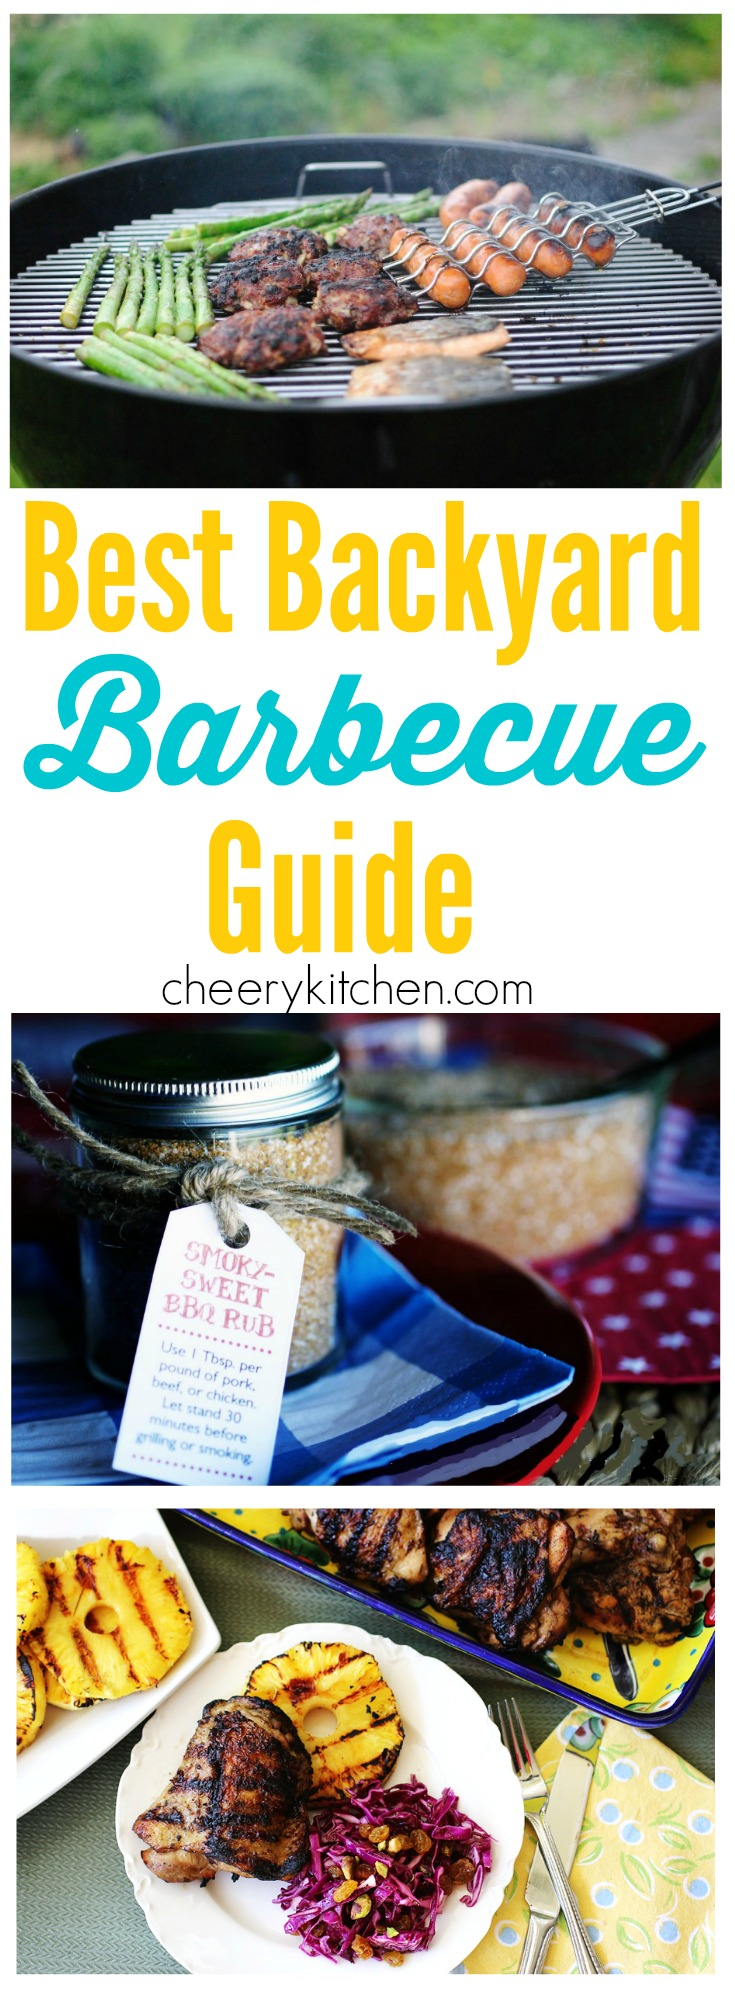 best backyard barbecue guide cheery kitchen